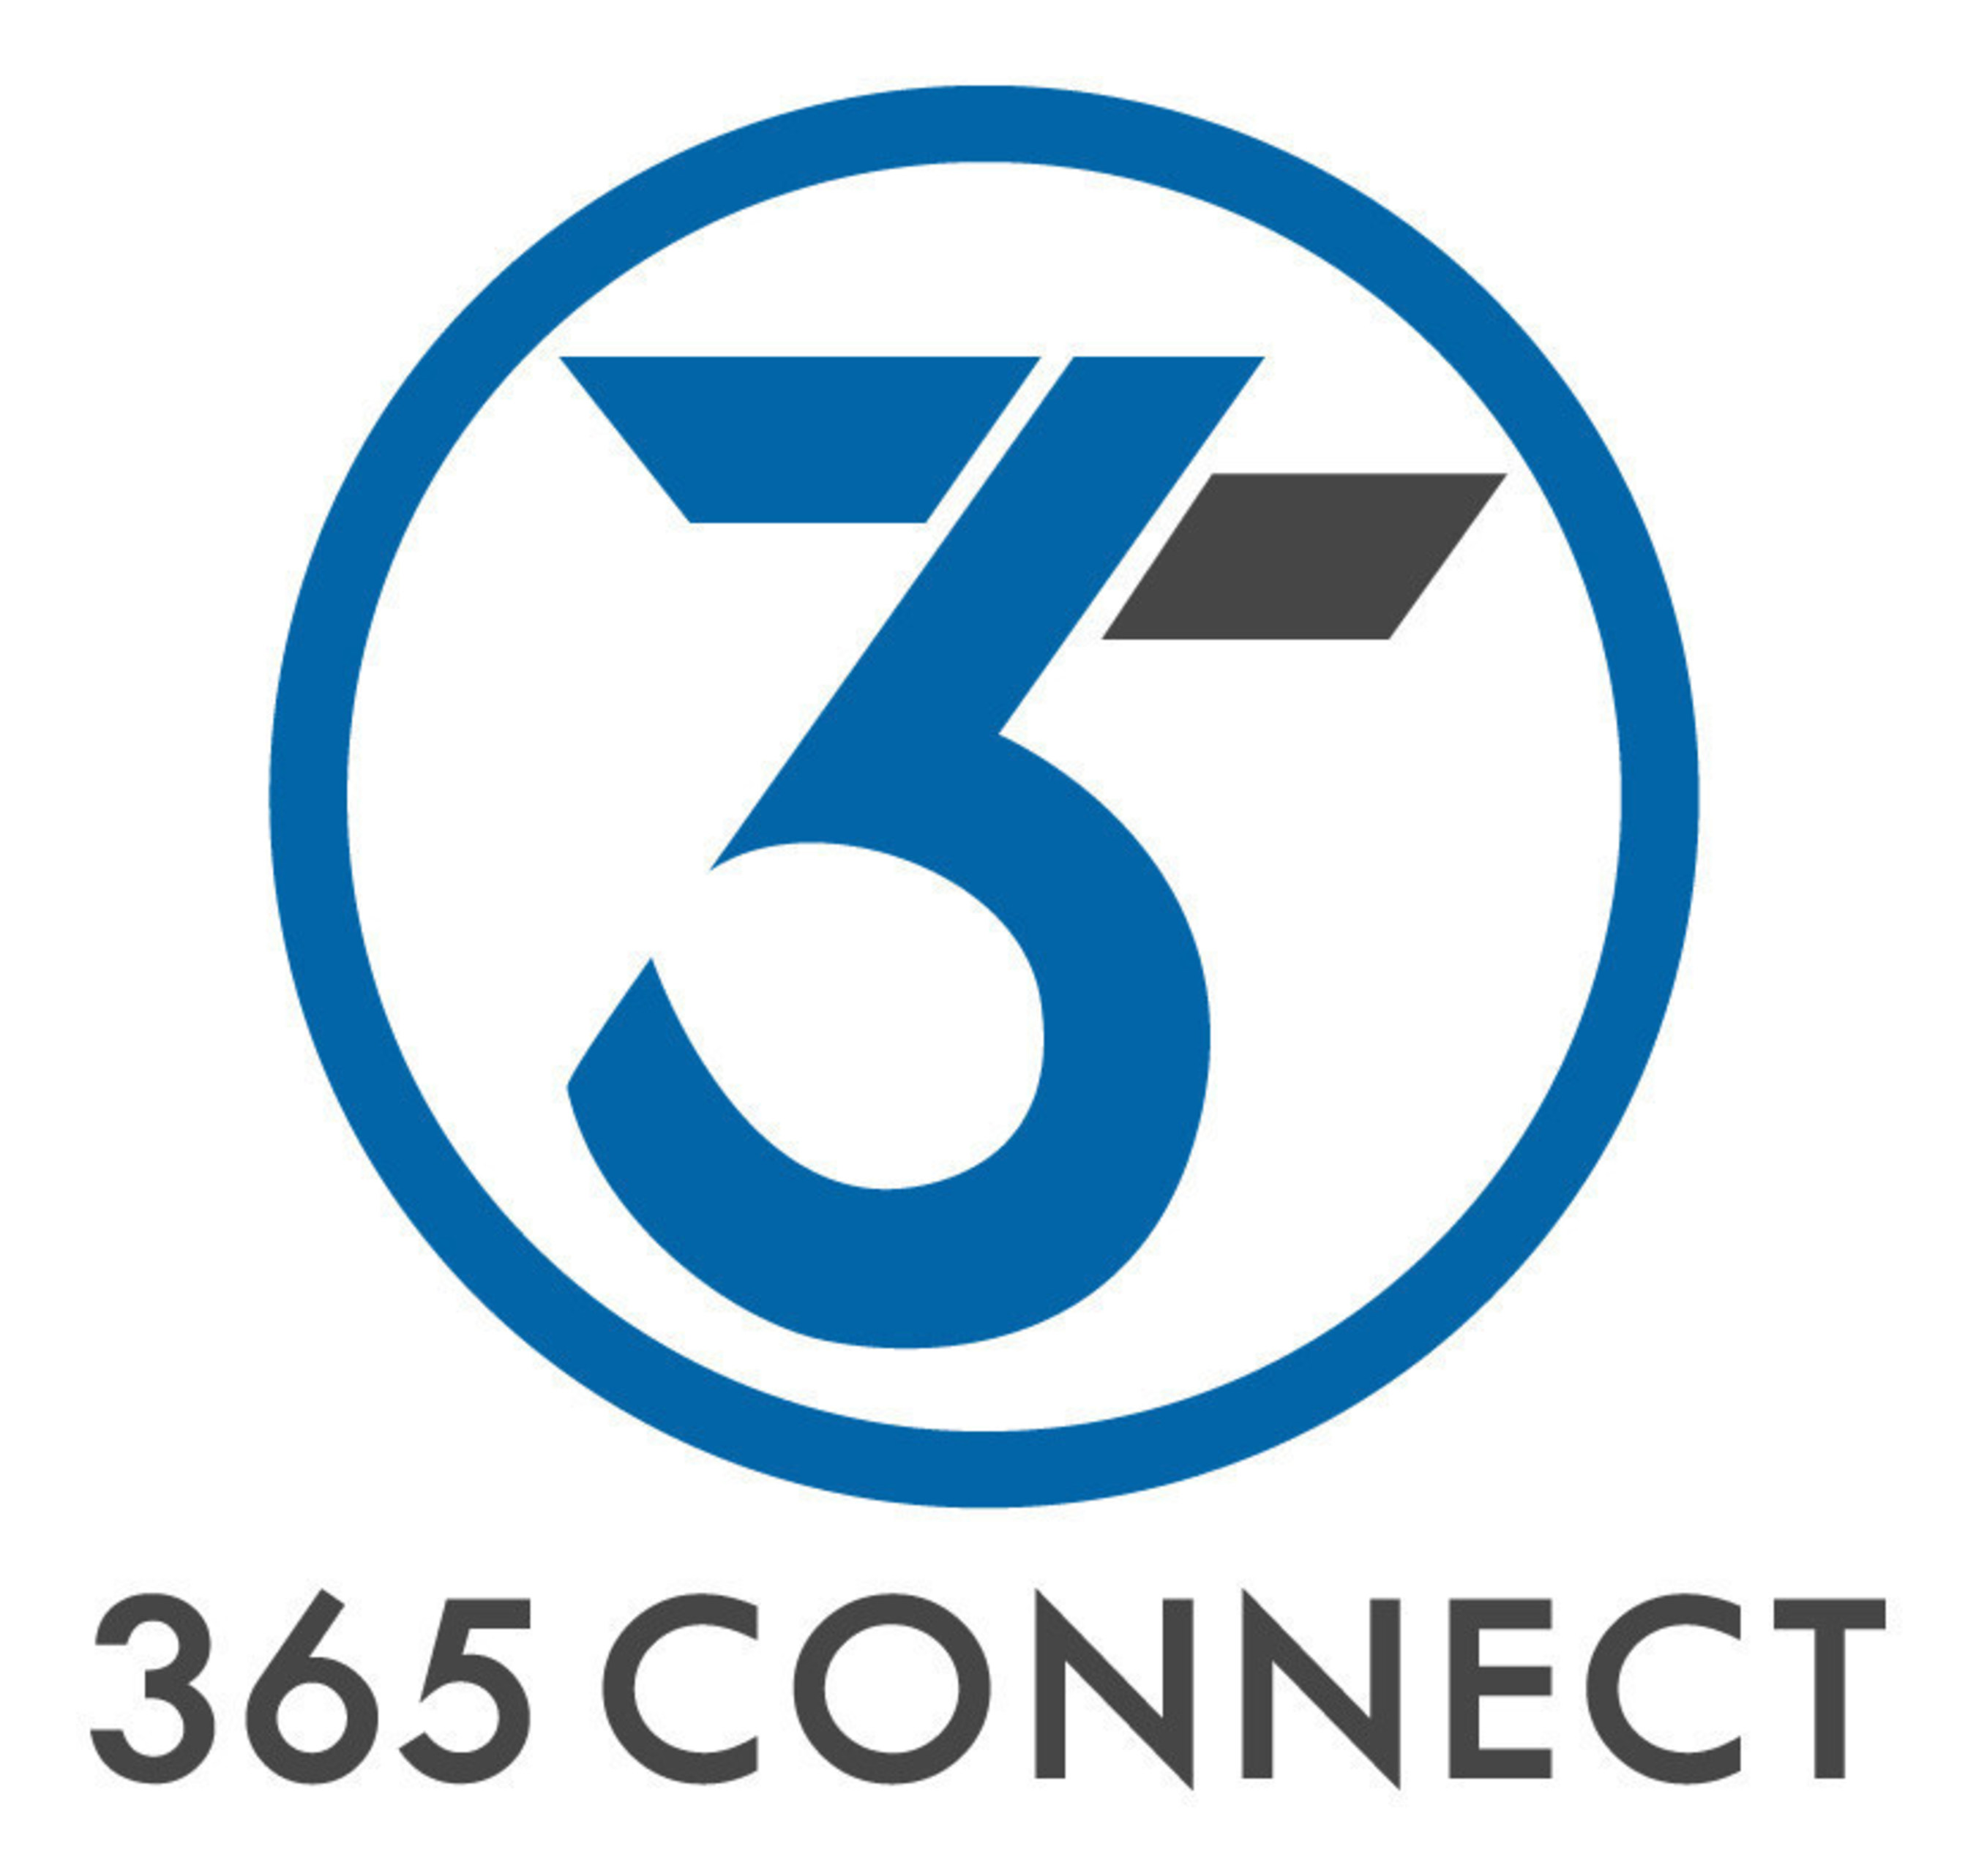 365 Connect To Pare At Apartment Internet Marketing Conference In Huntington Beach California